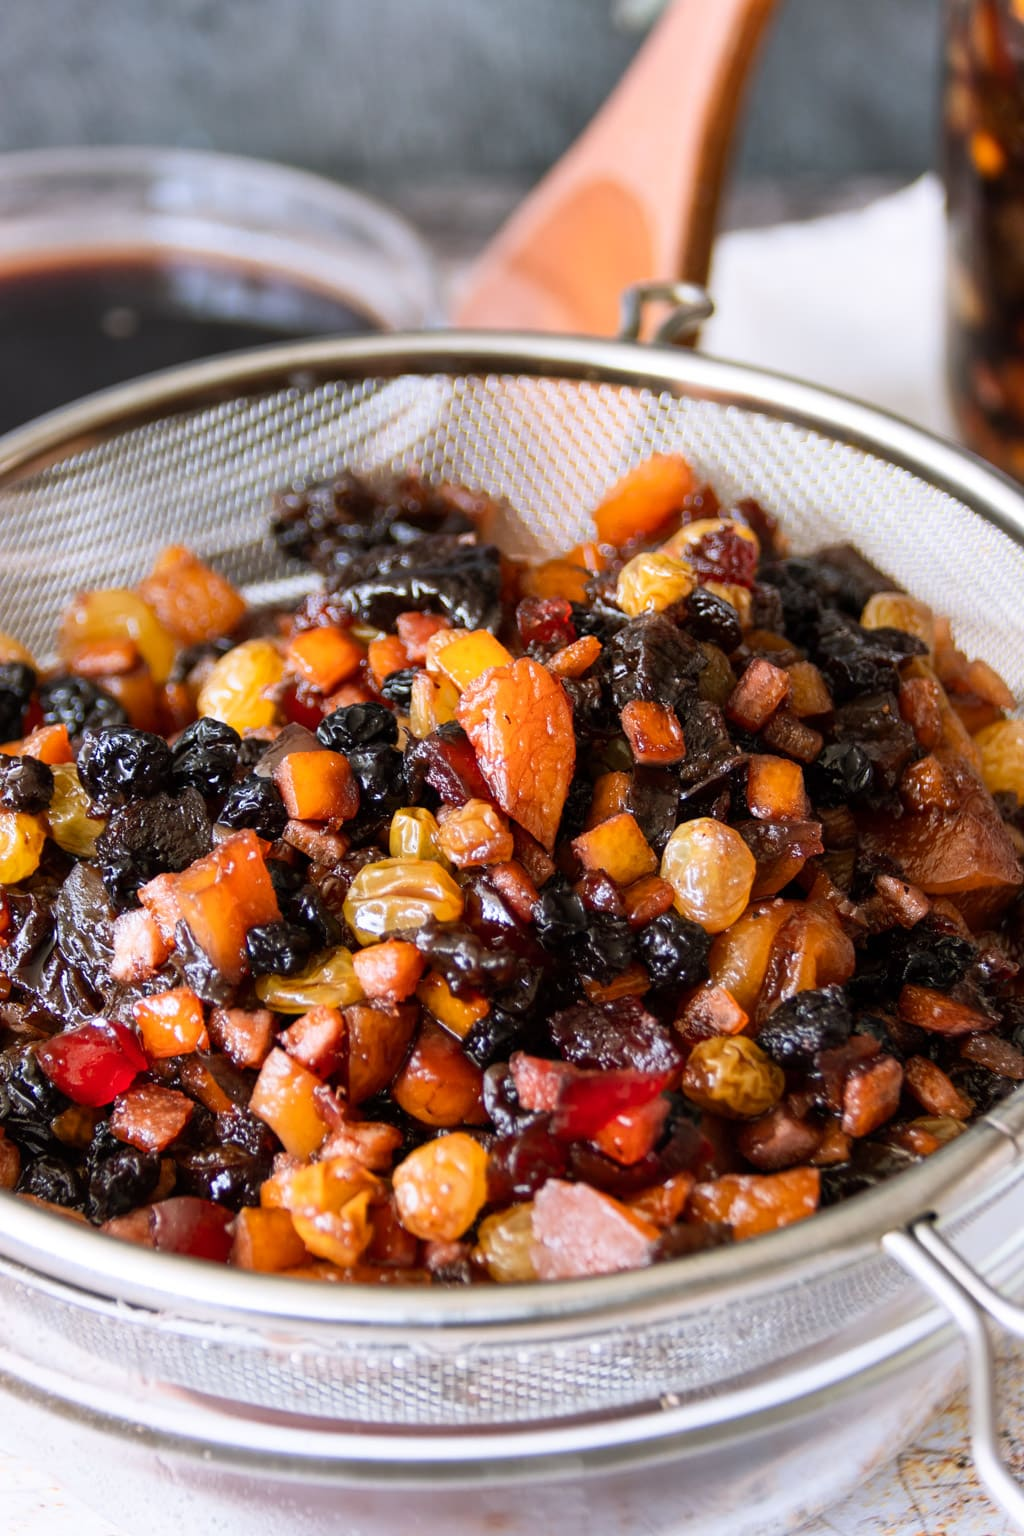 Do-it-yourself fruit mix soaked in rum, drained before mixing into fruit cake